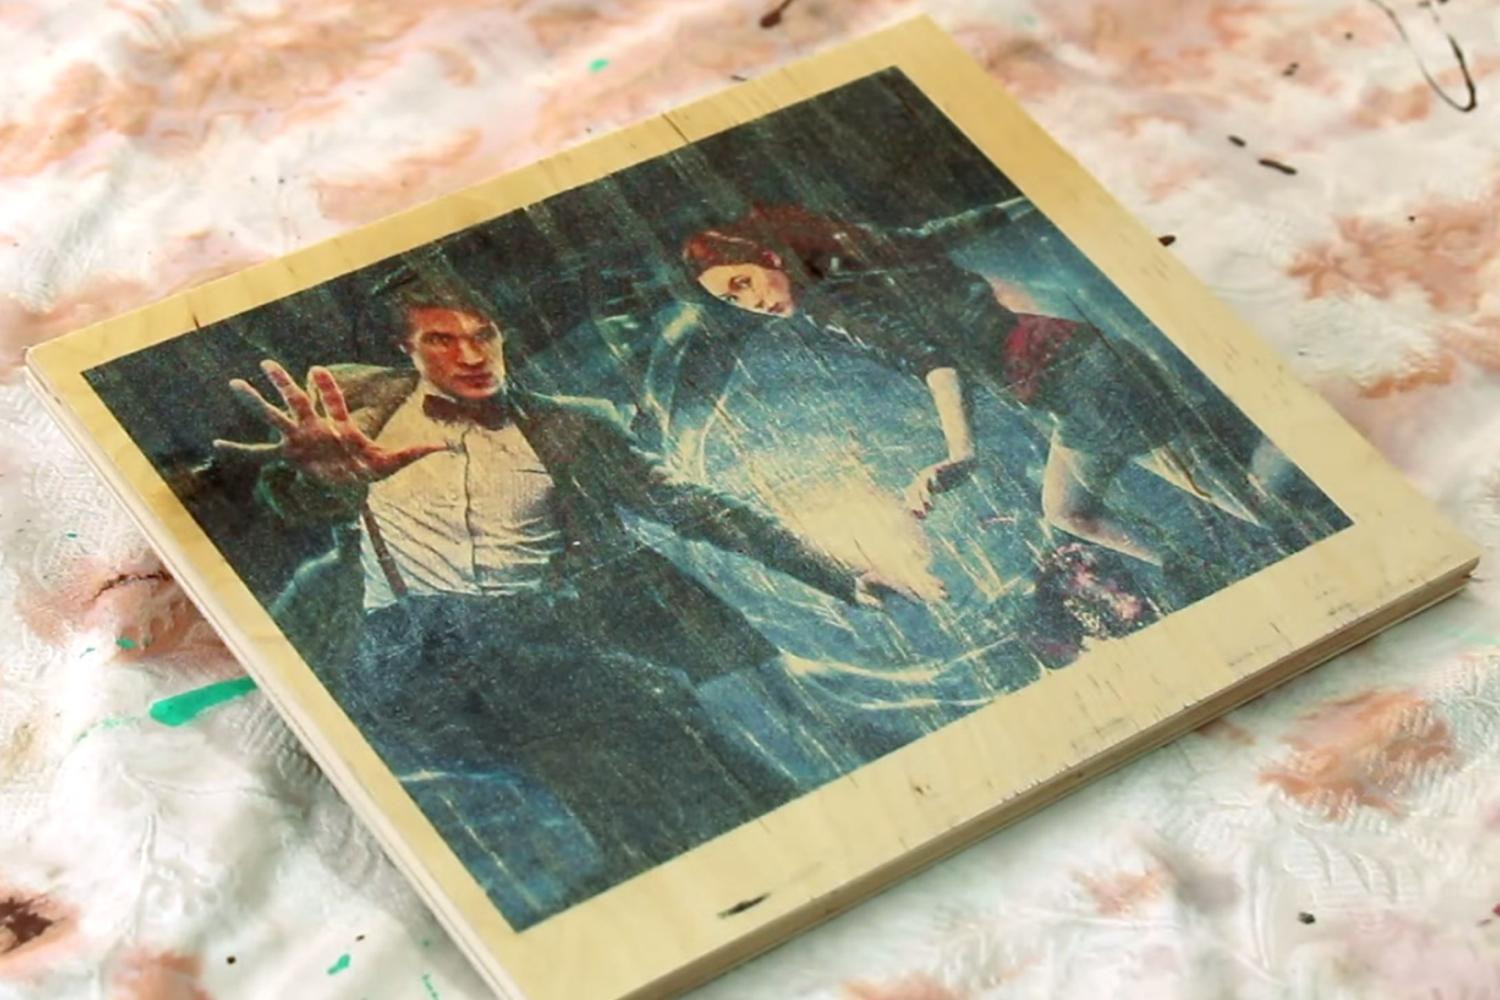 Prints On Wood DIY  DIY video shows you how to print on wood with an inkjet